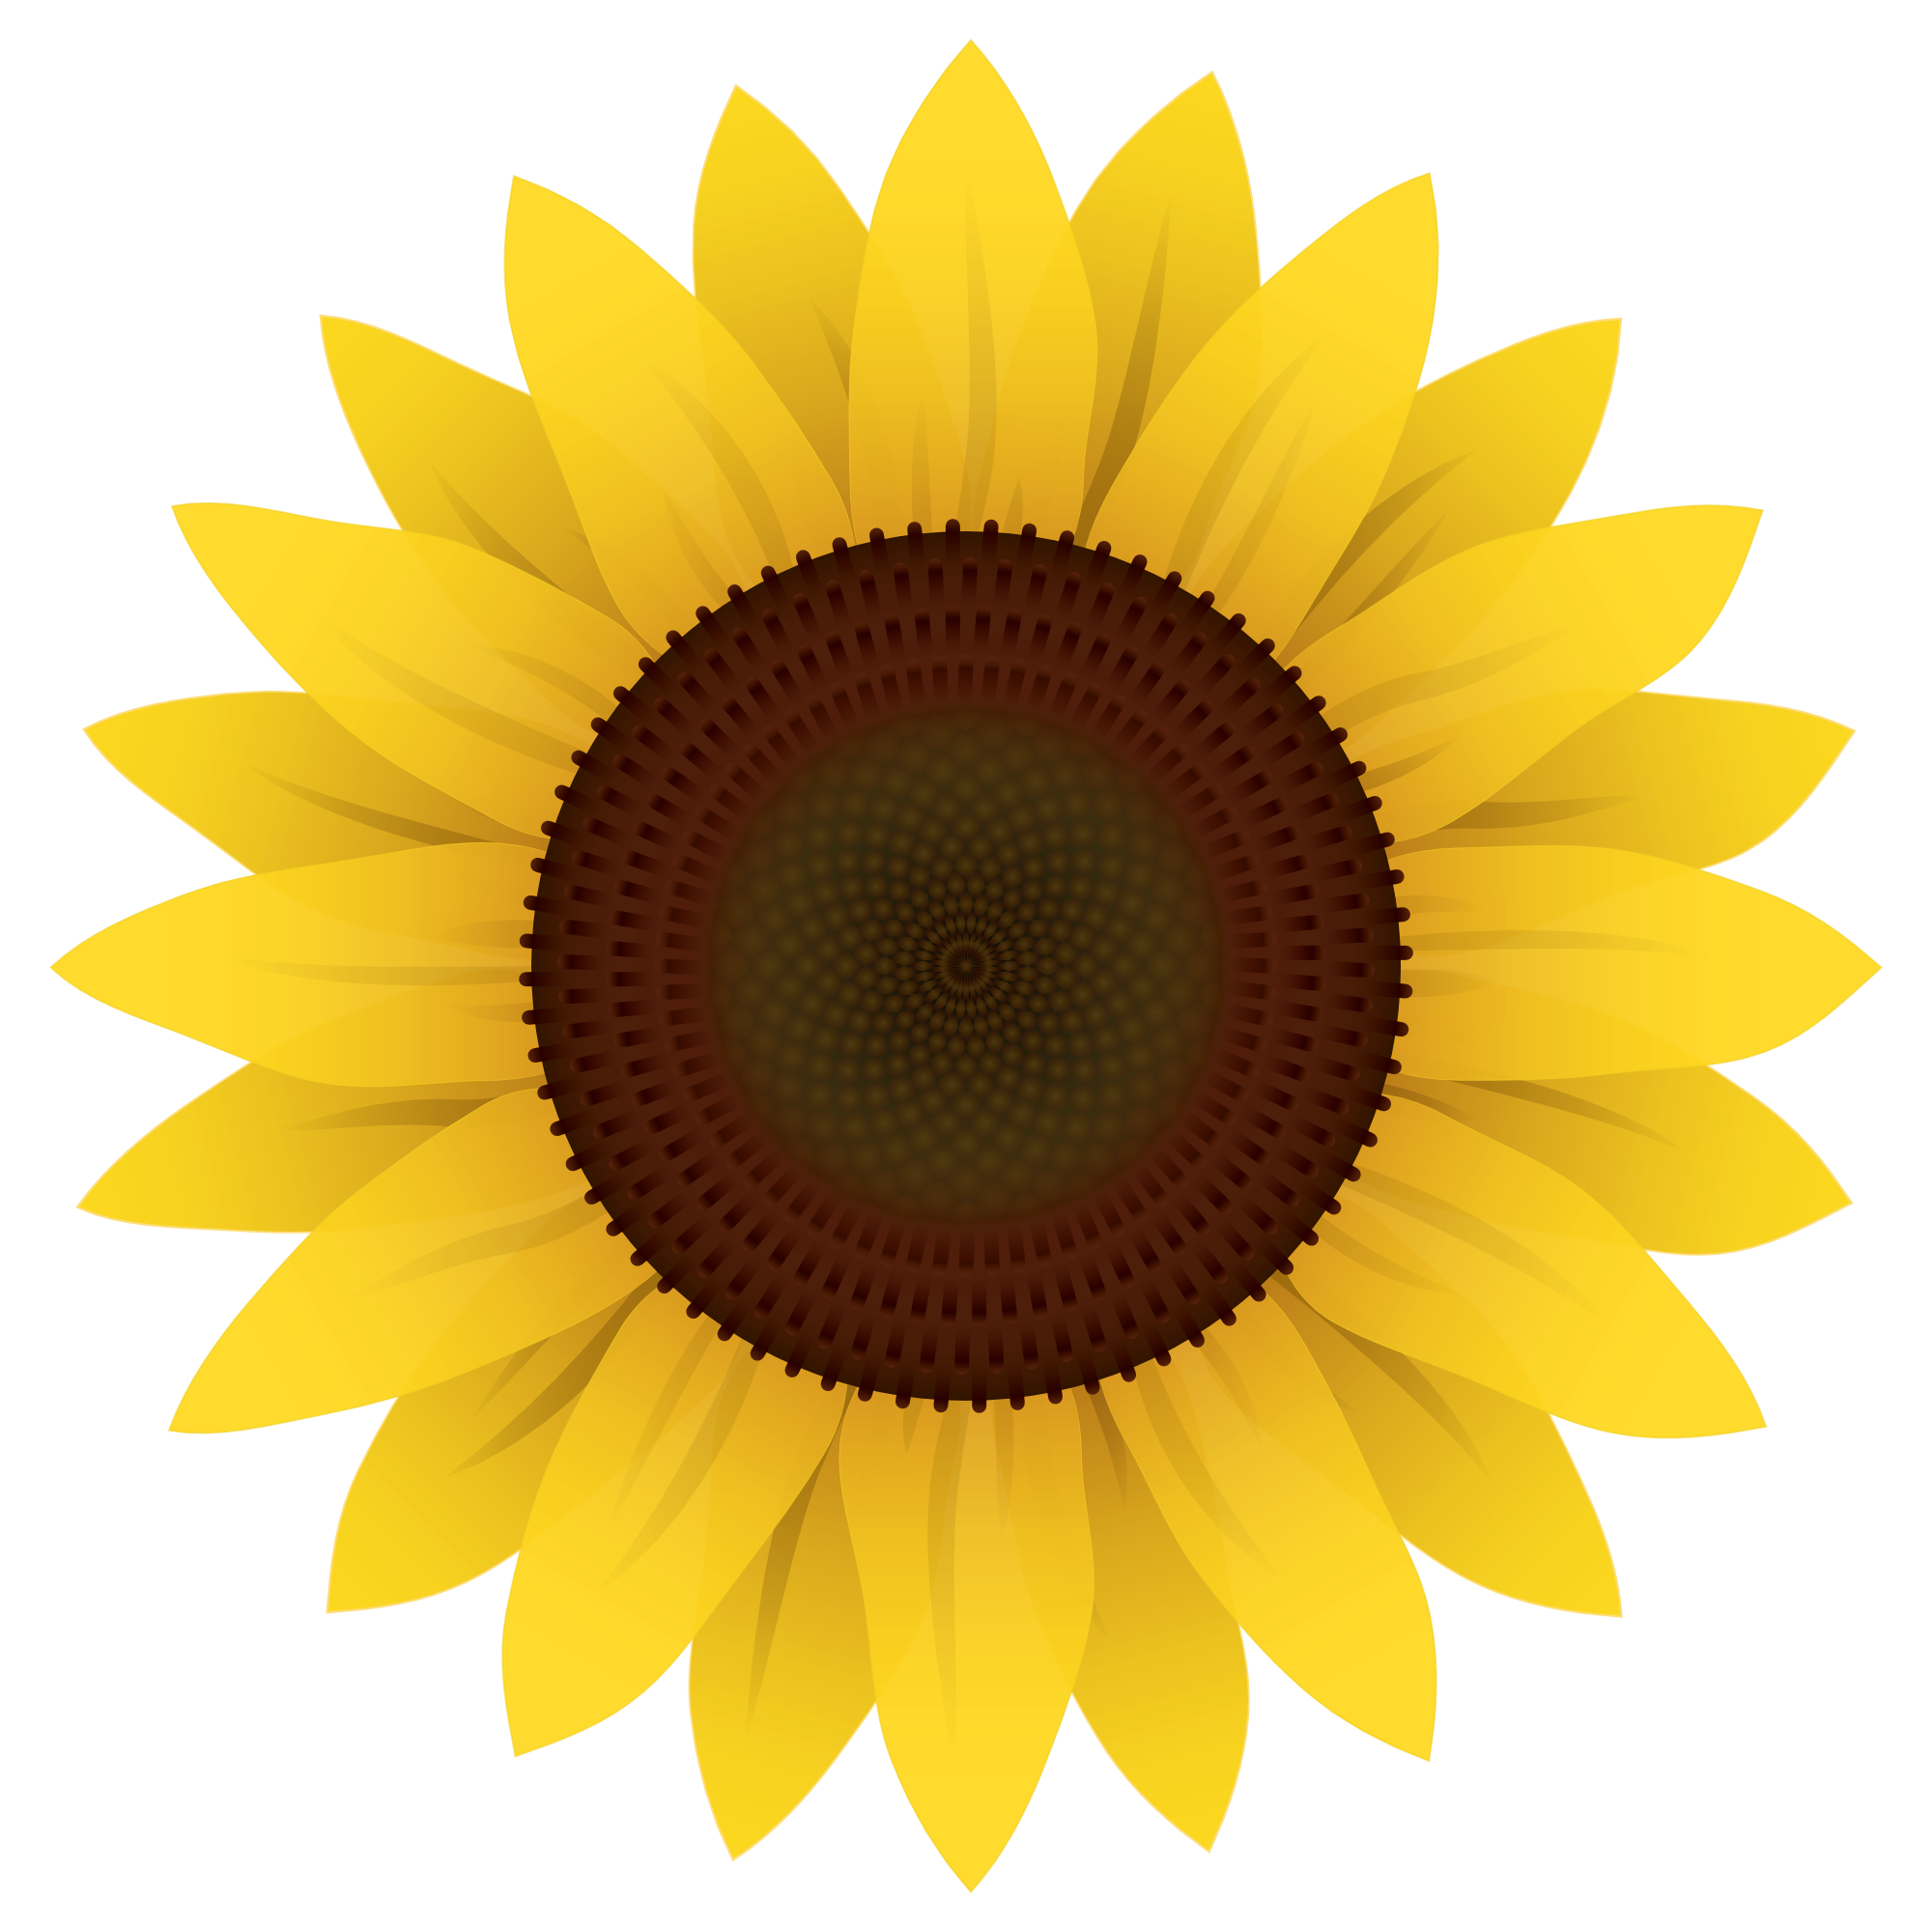 Sunflower Vector PNG Image - PurePNG | Free transparent ...